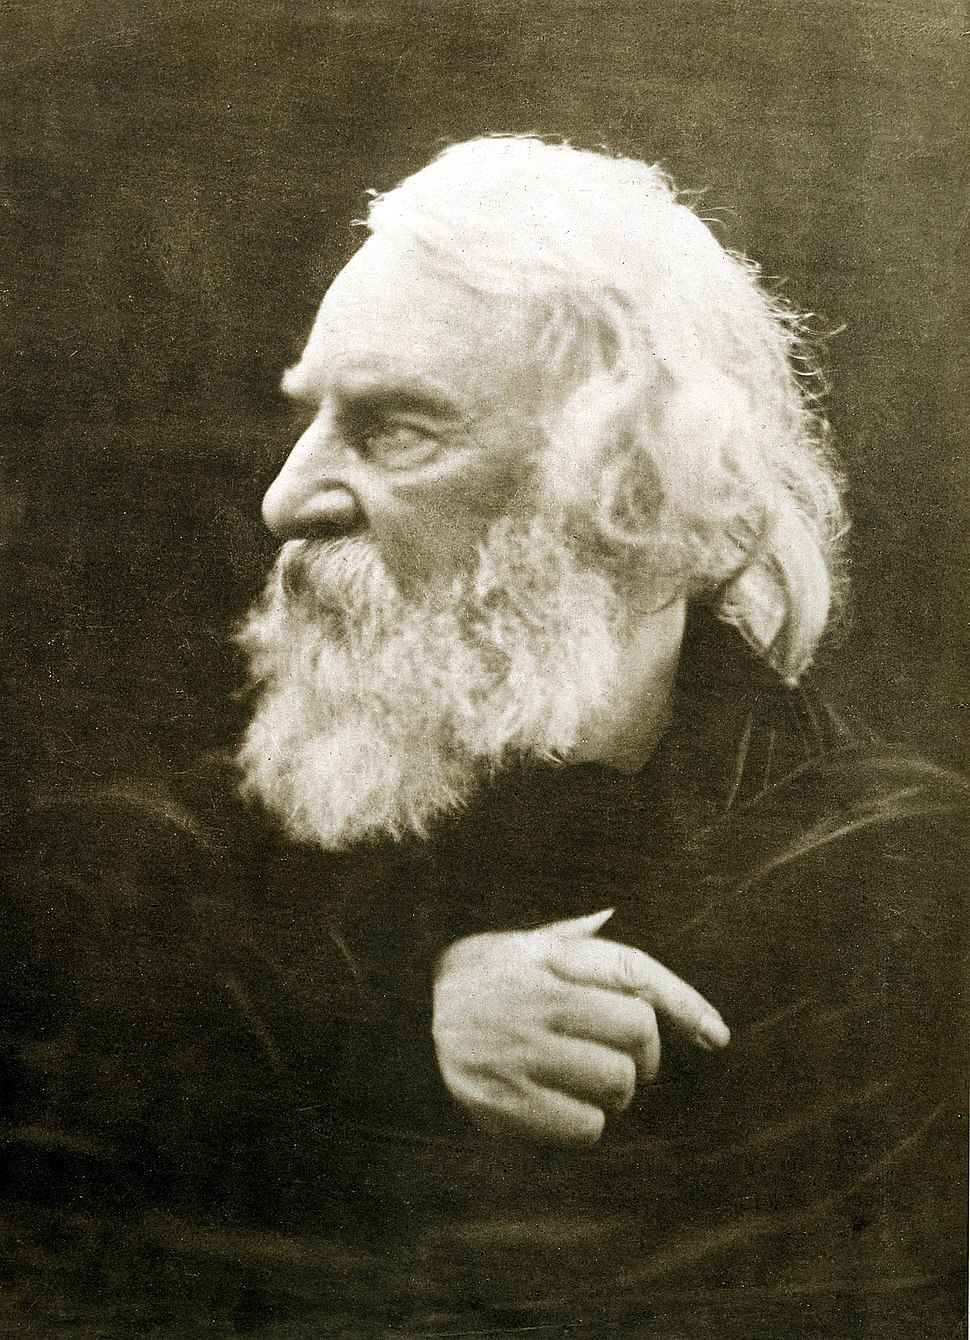 Henry Wadsworth Longfellow, photographed by Julia Margaret Cameron in 1868